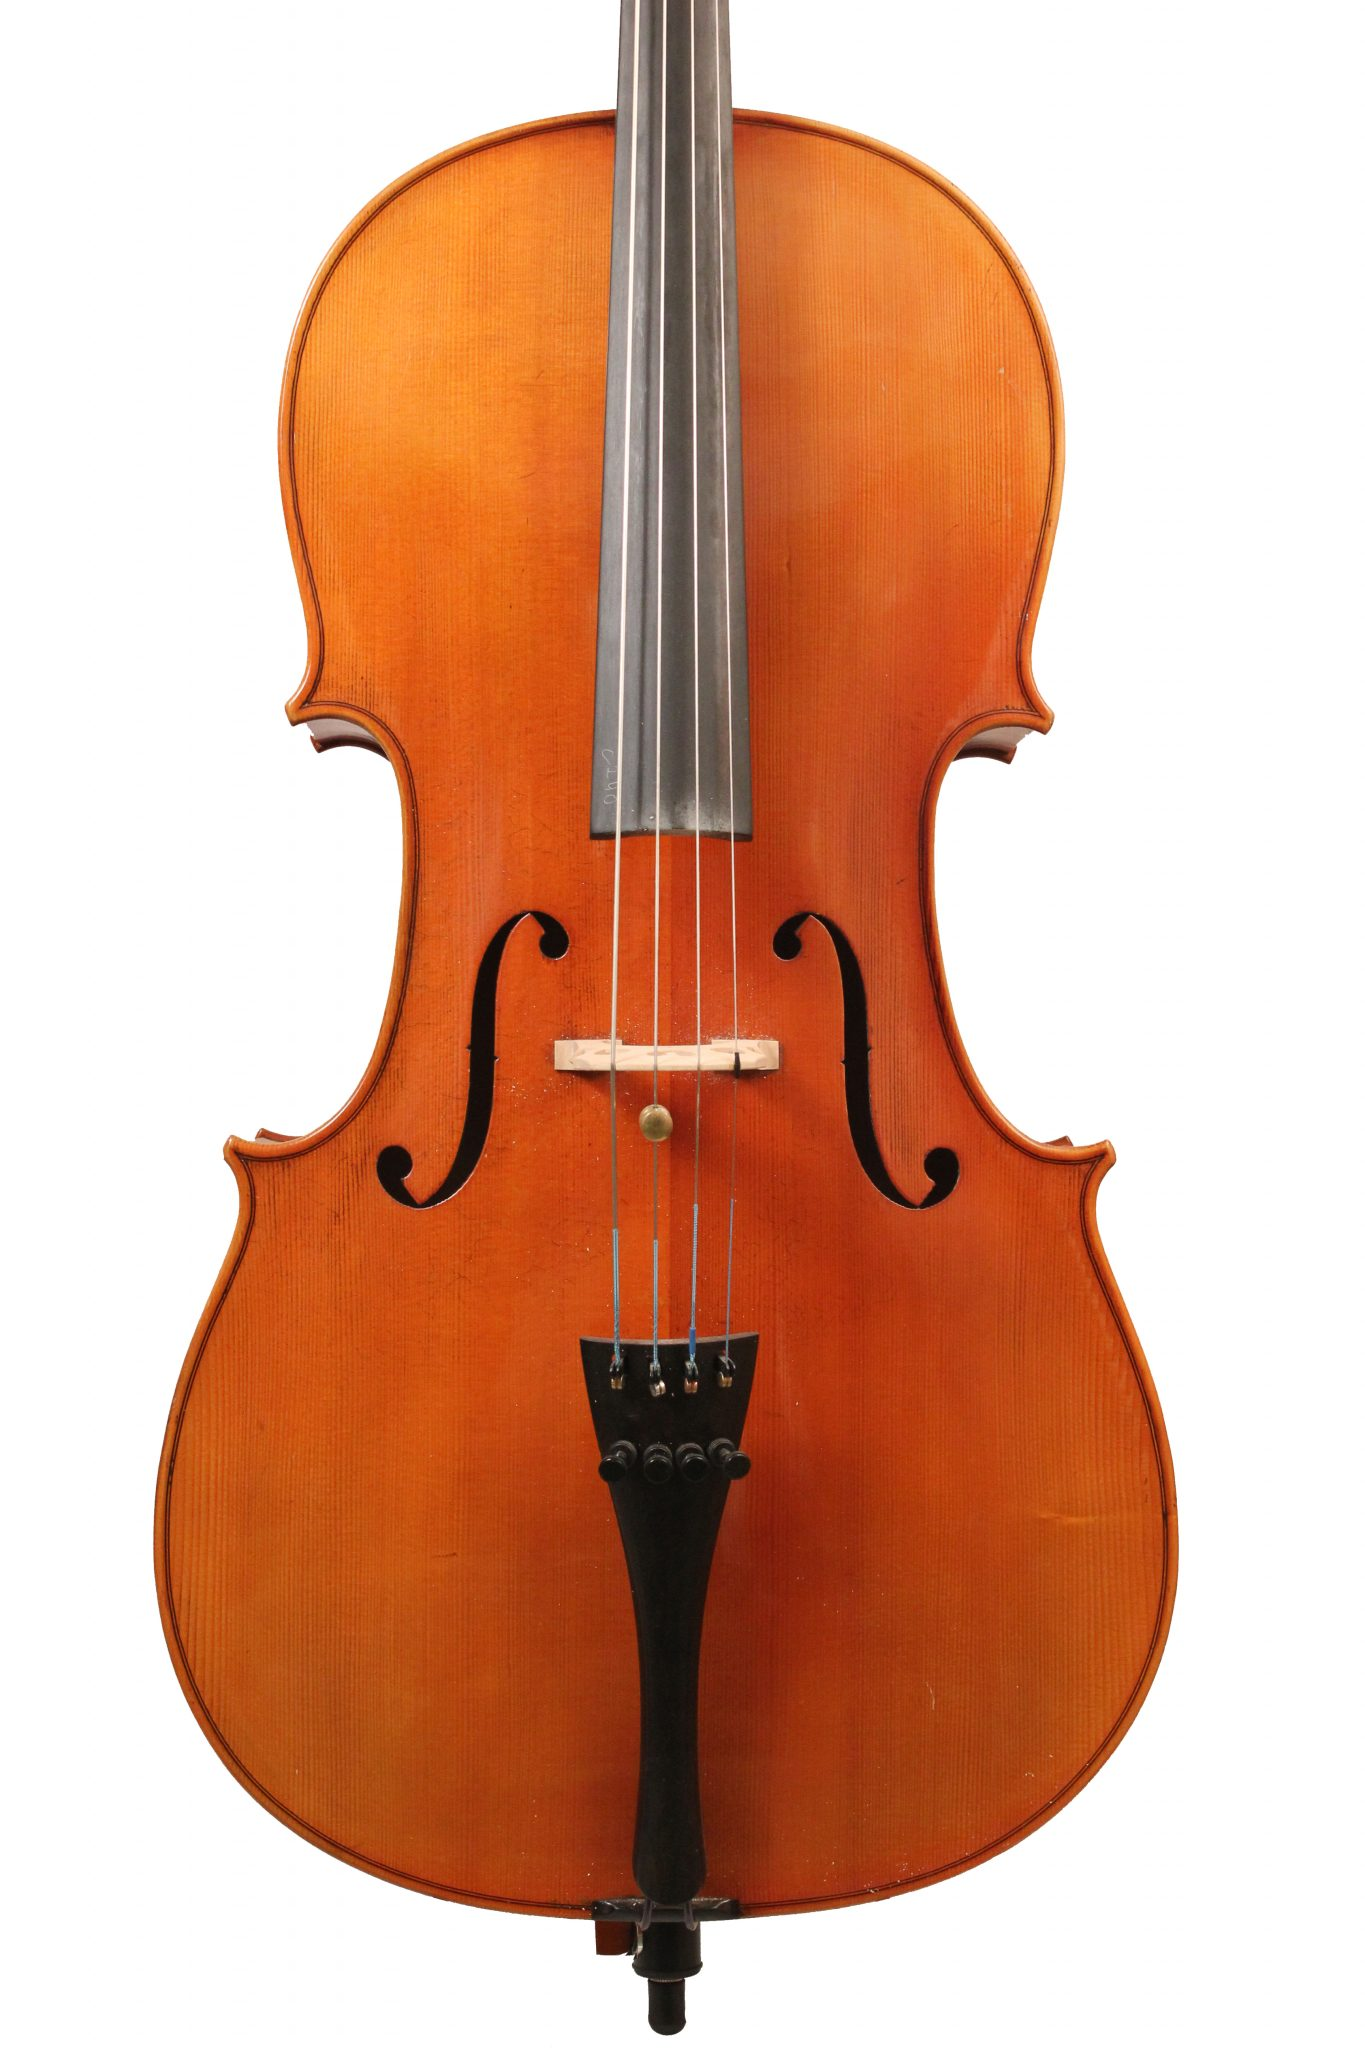 Cello by Rudolph Fiedler for sale at Bridgewewood and Neitzert London